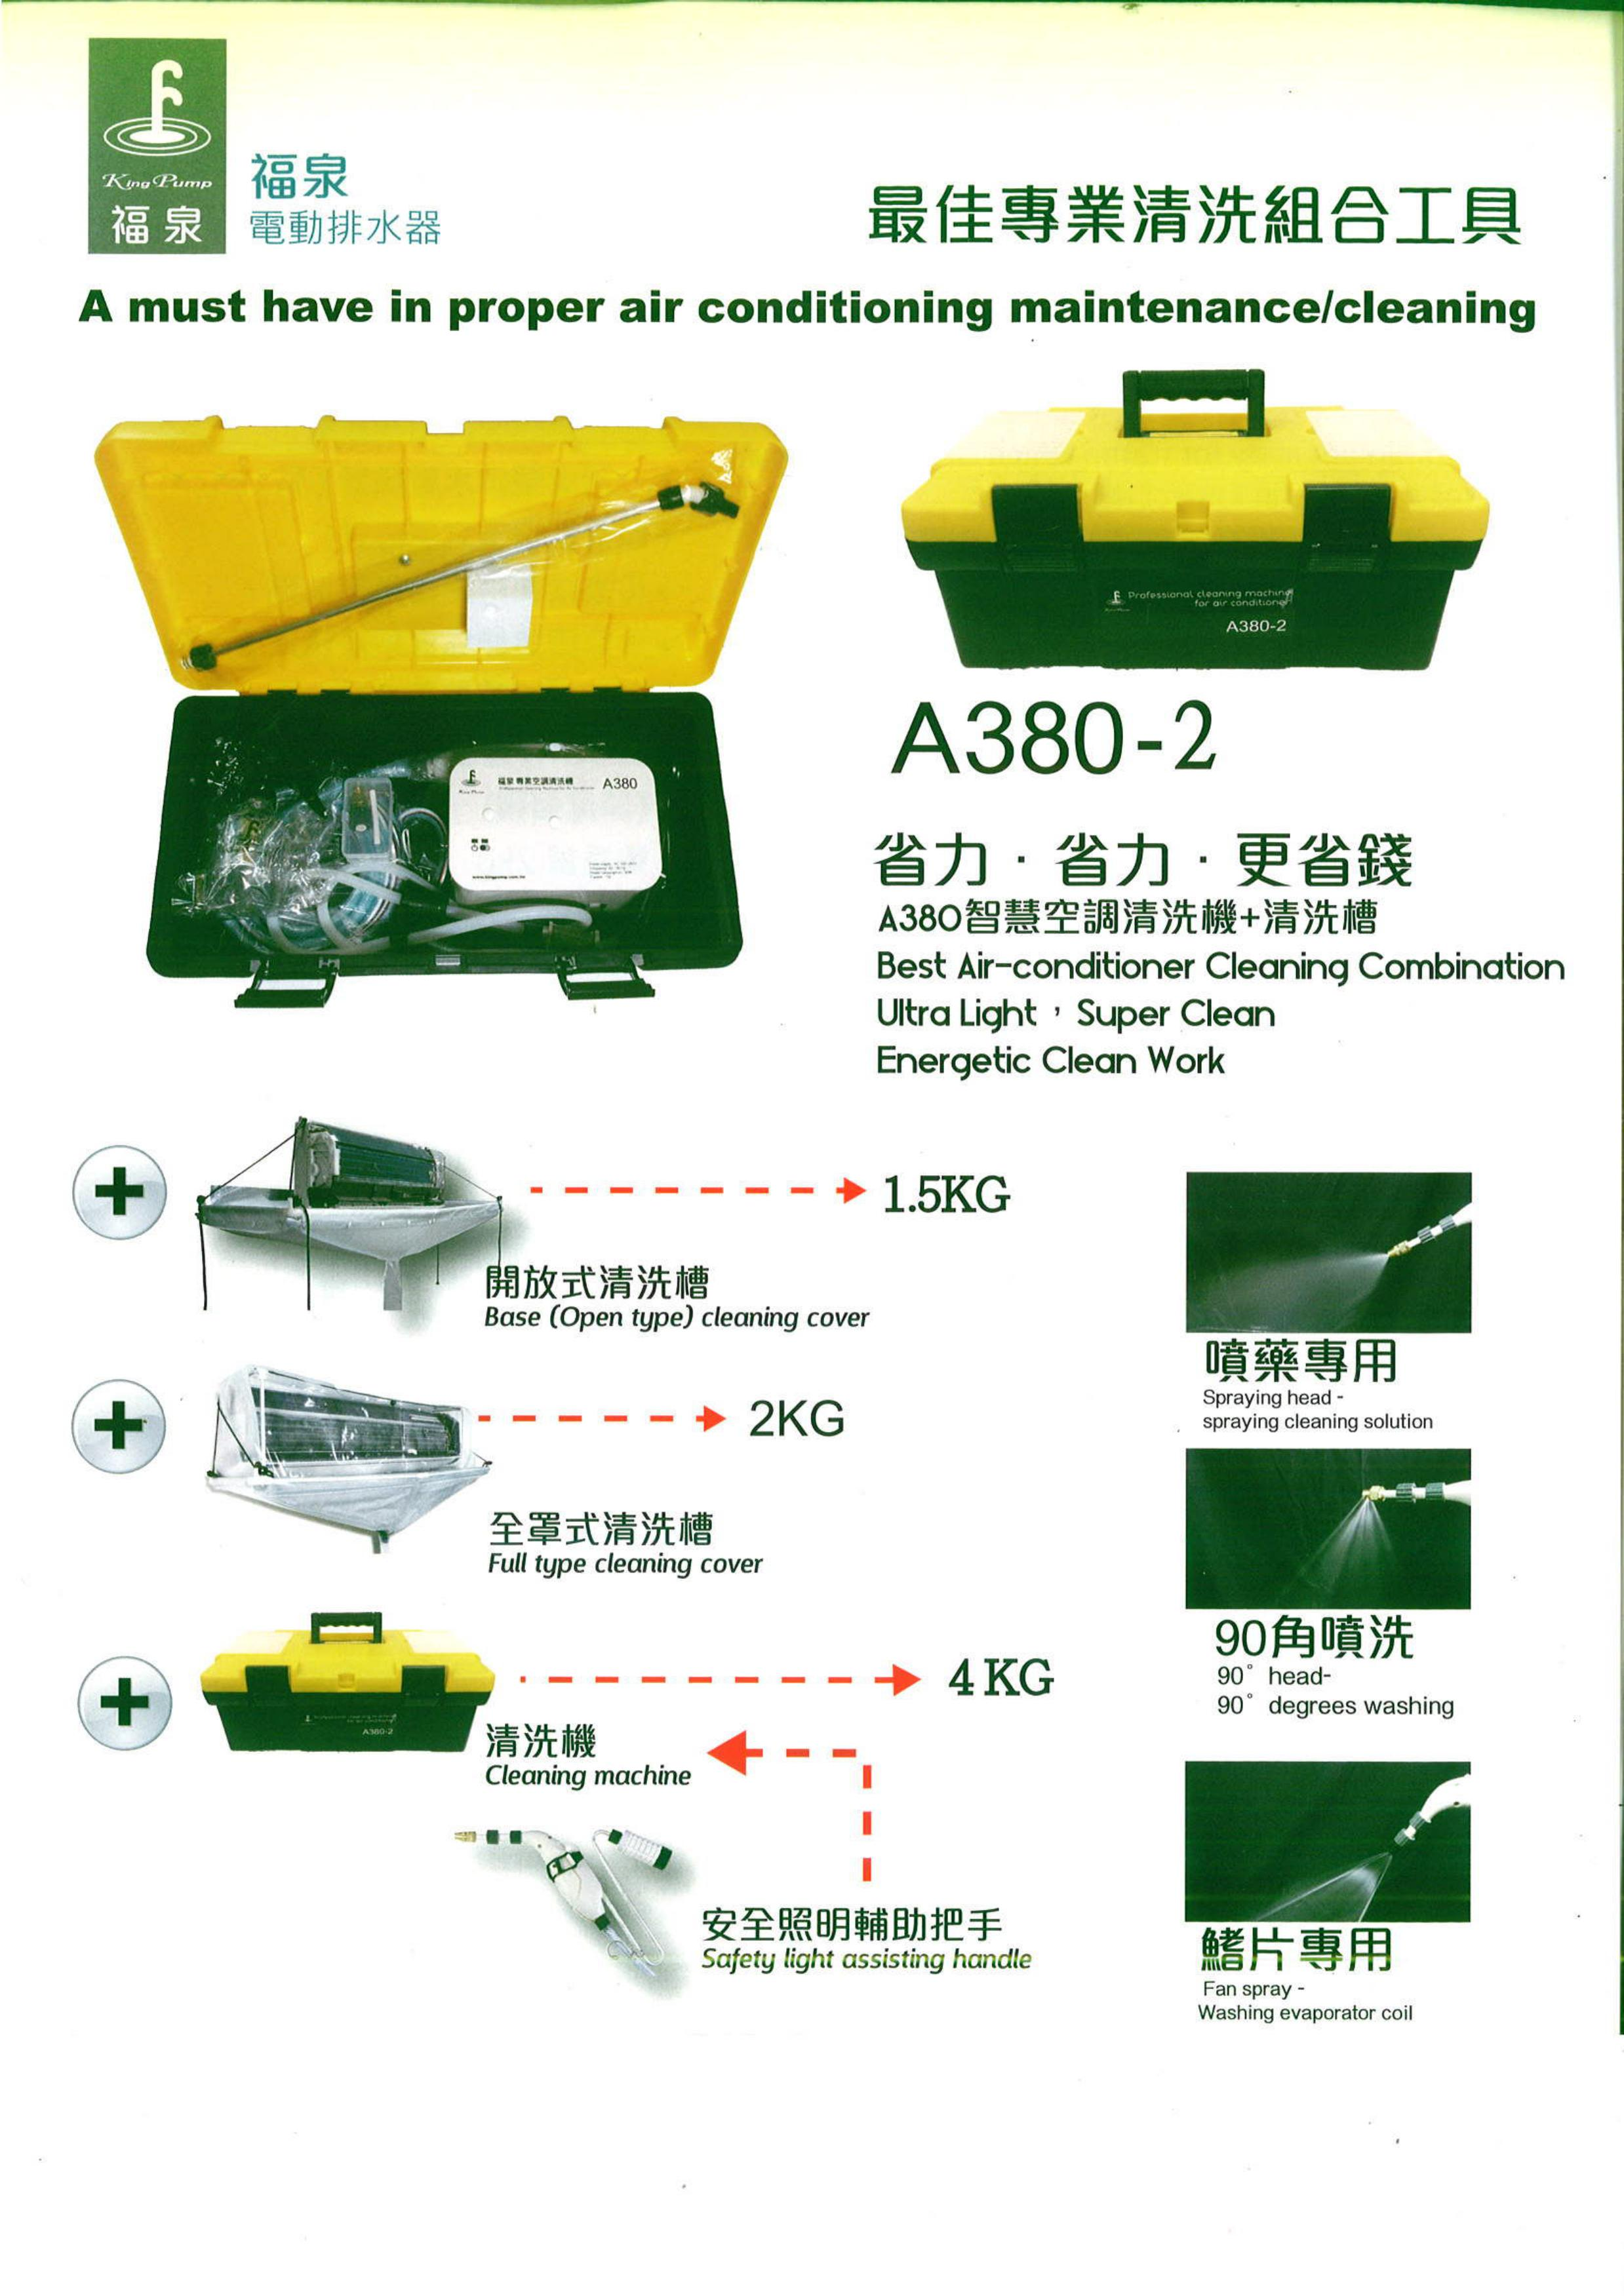 KING PUMP CLEANING MACHINE (A380-2)